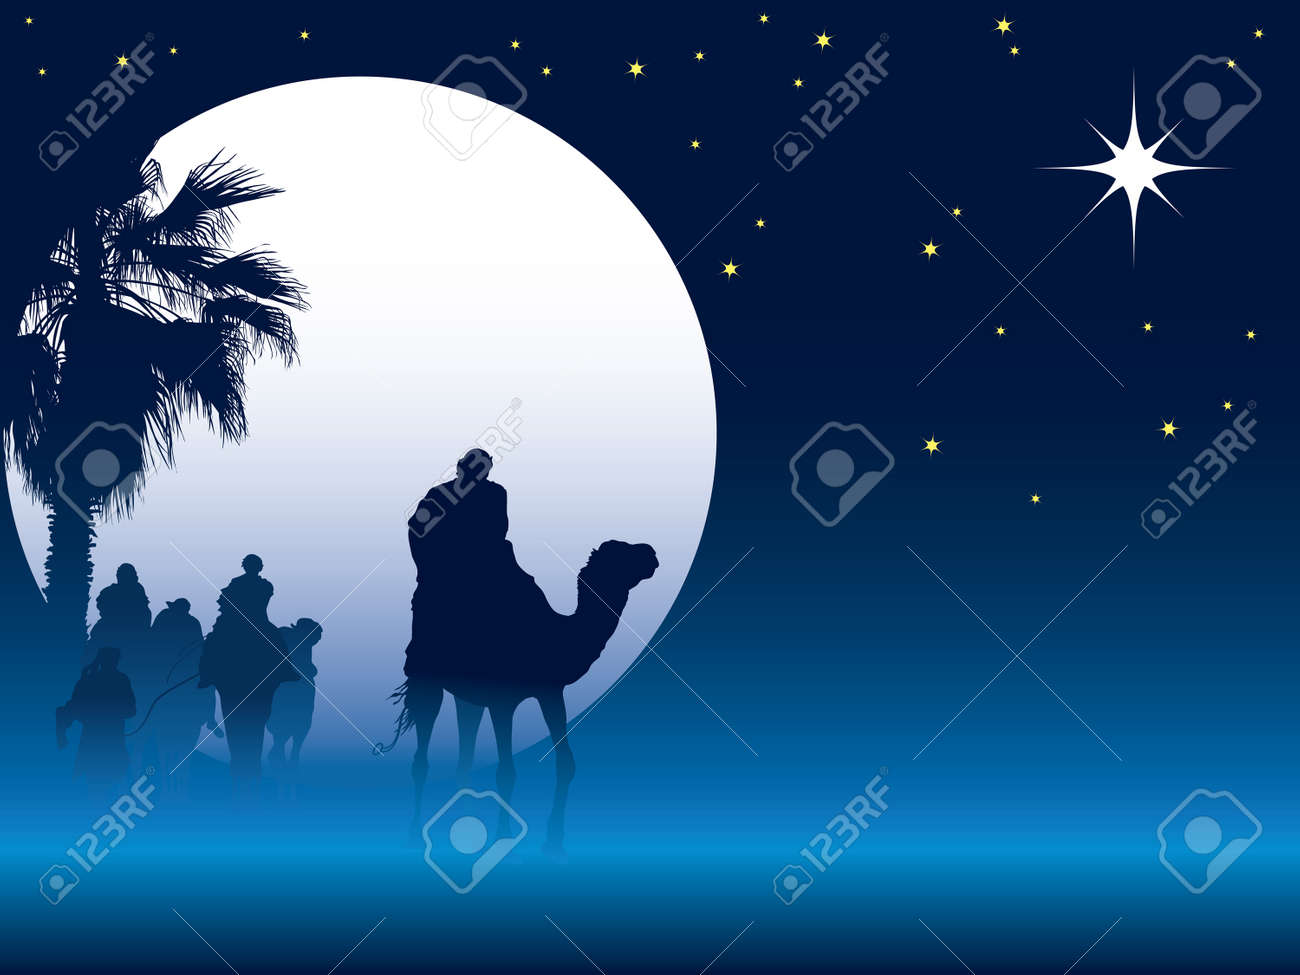 Nativity scene with wise men on camels going through the desert - 5909779